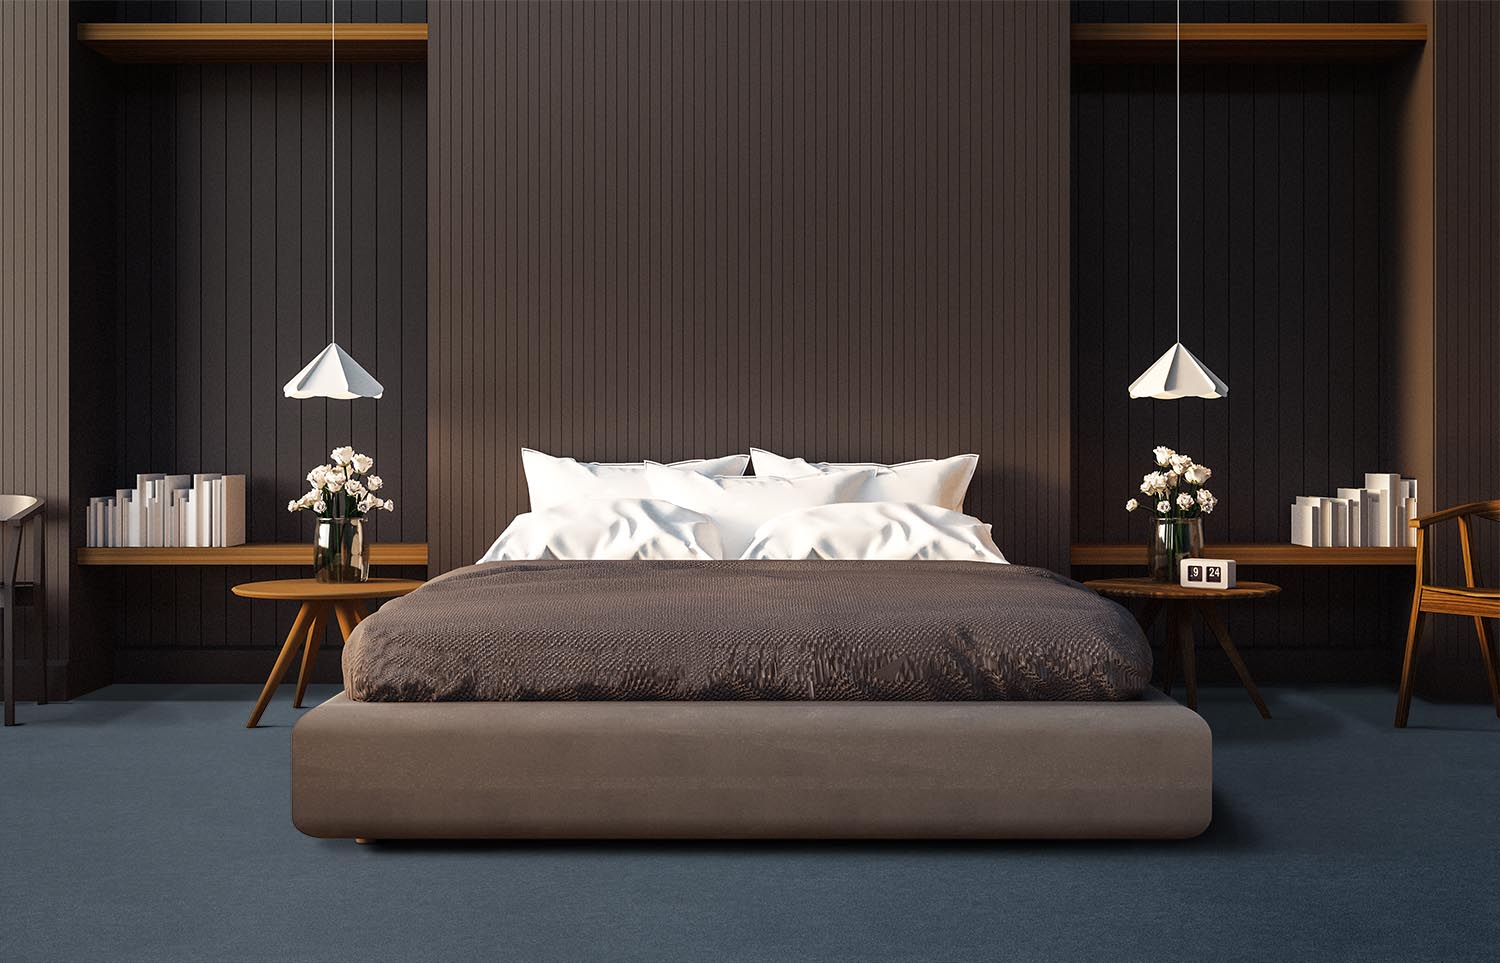 Softology - S301 - Suave contemporary bedroom